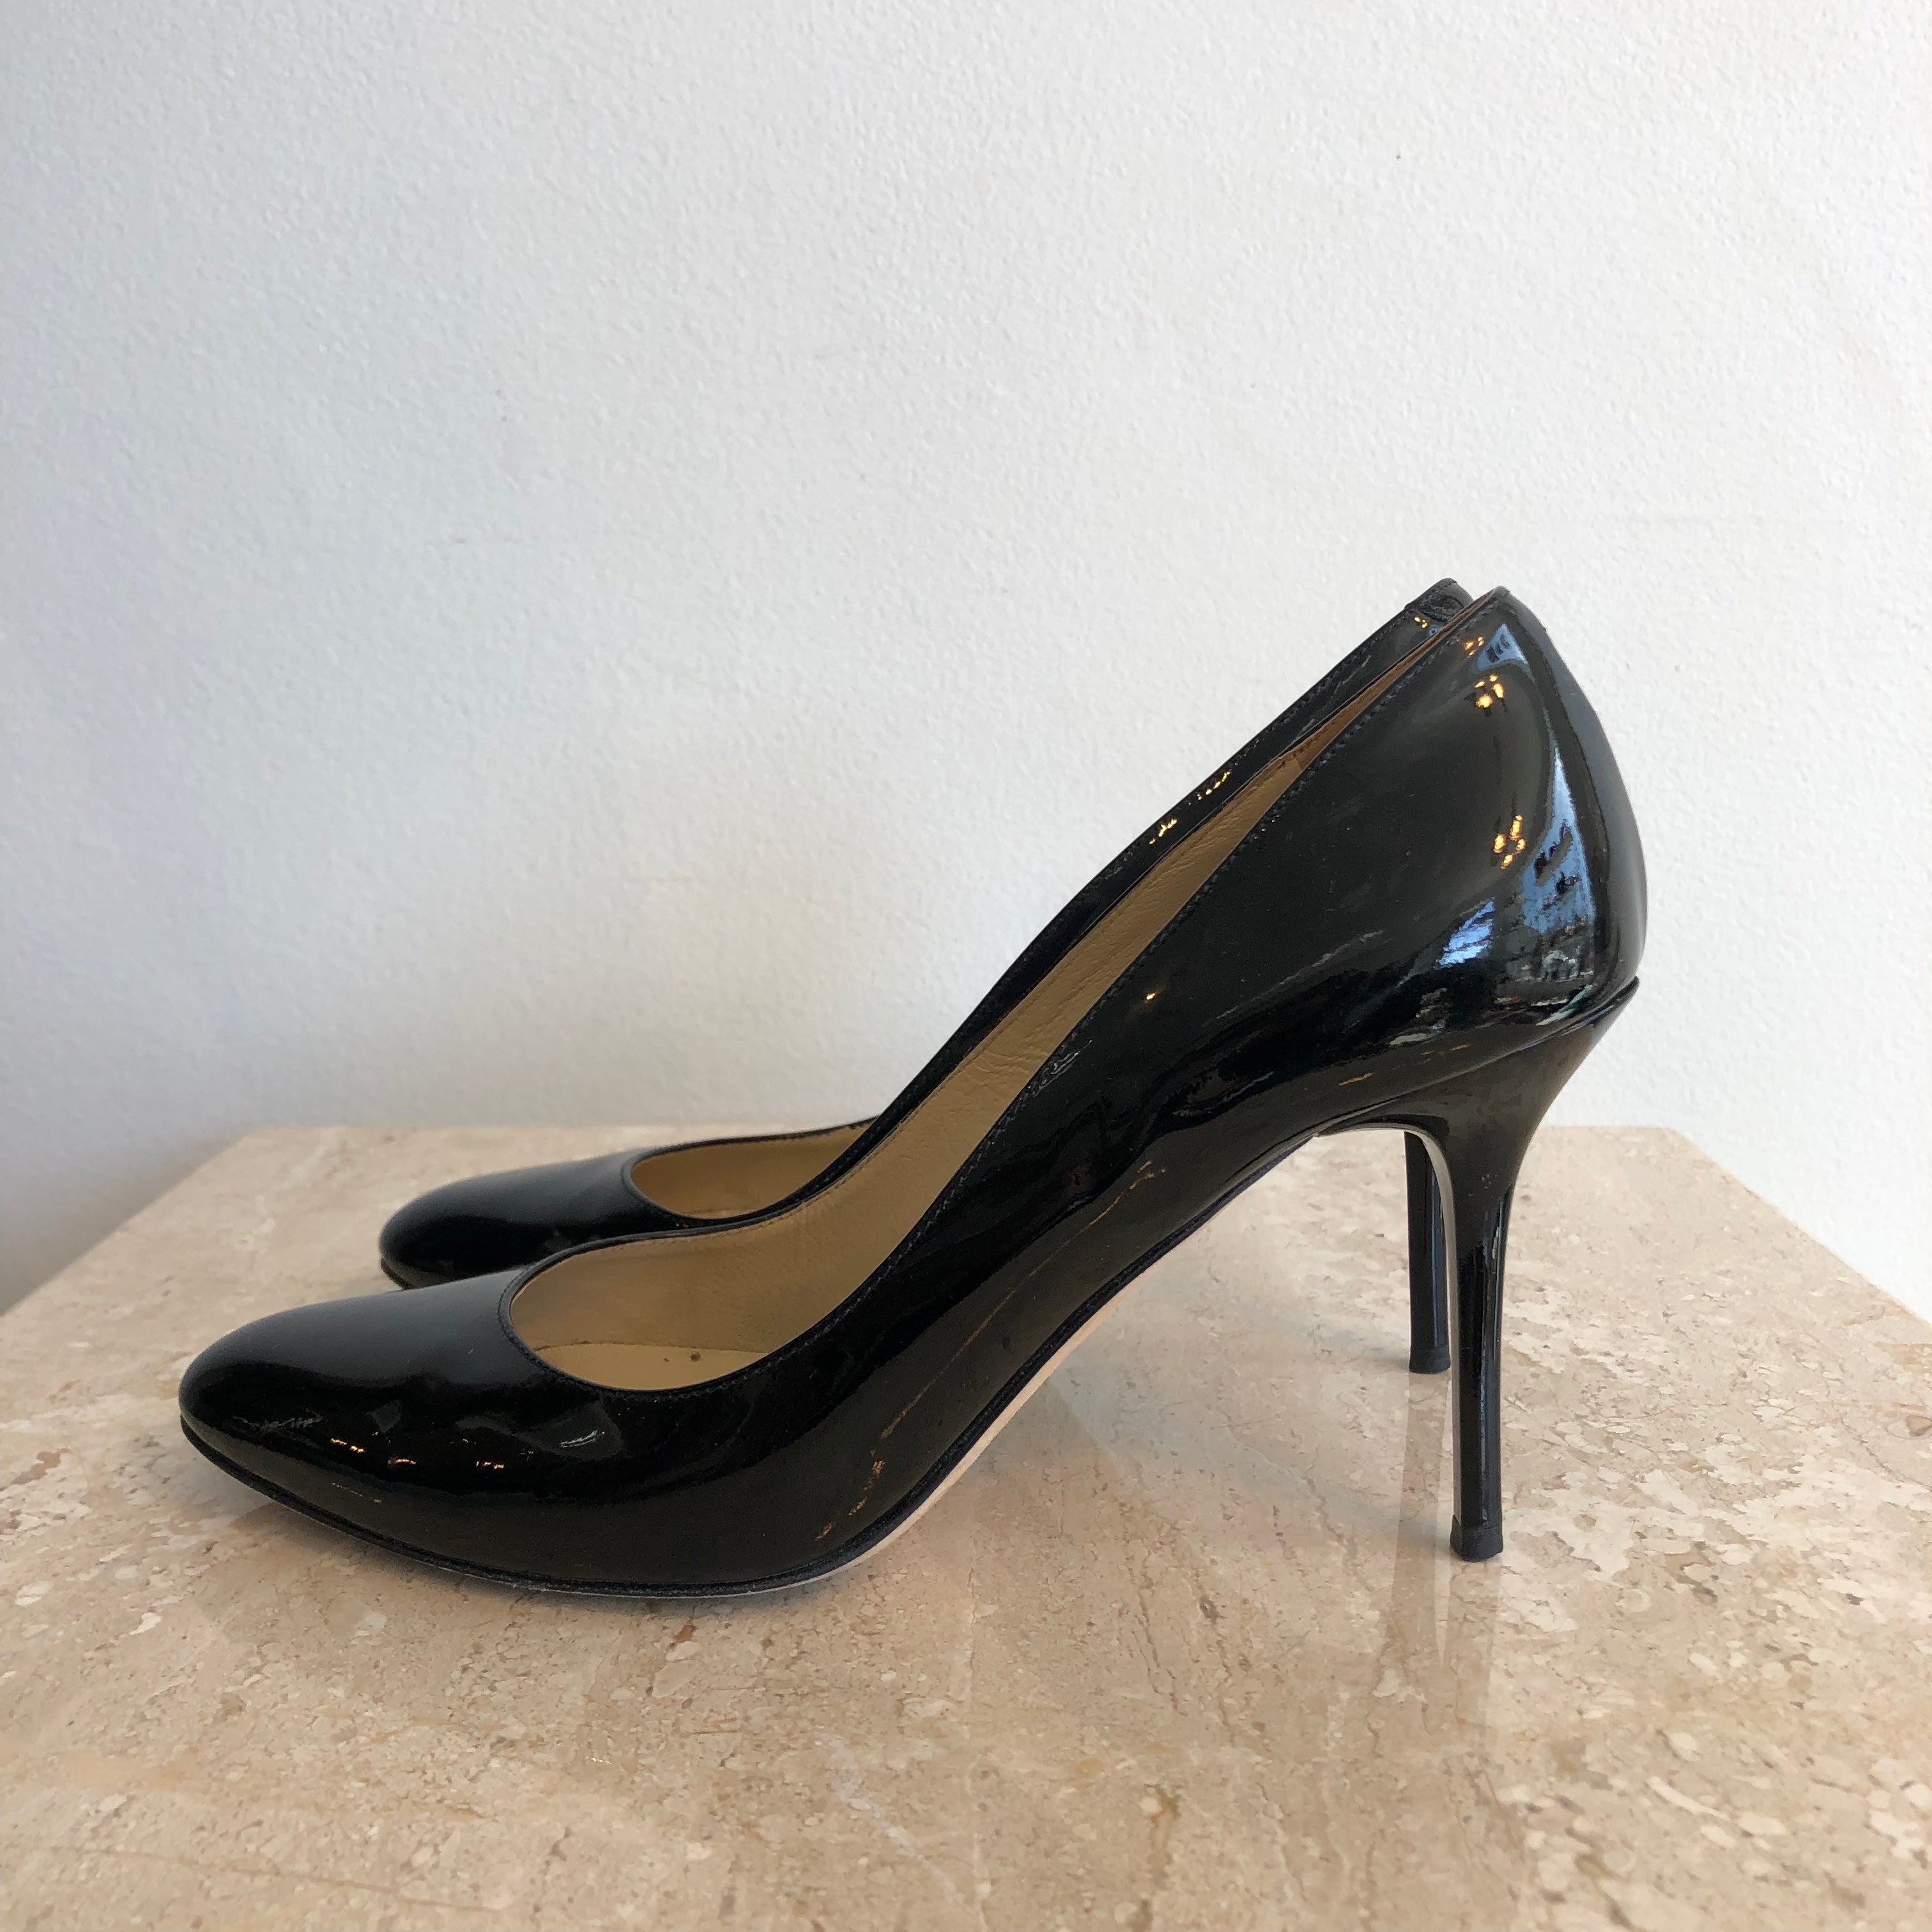 Authentic JIMMY CHOO Shoes - Size 6 - Black Patent - Pump